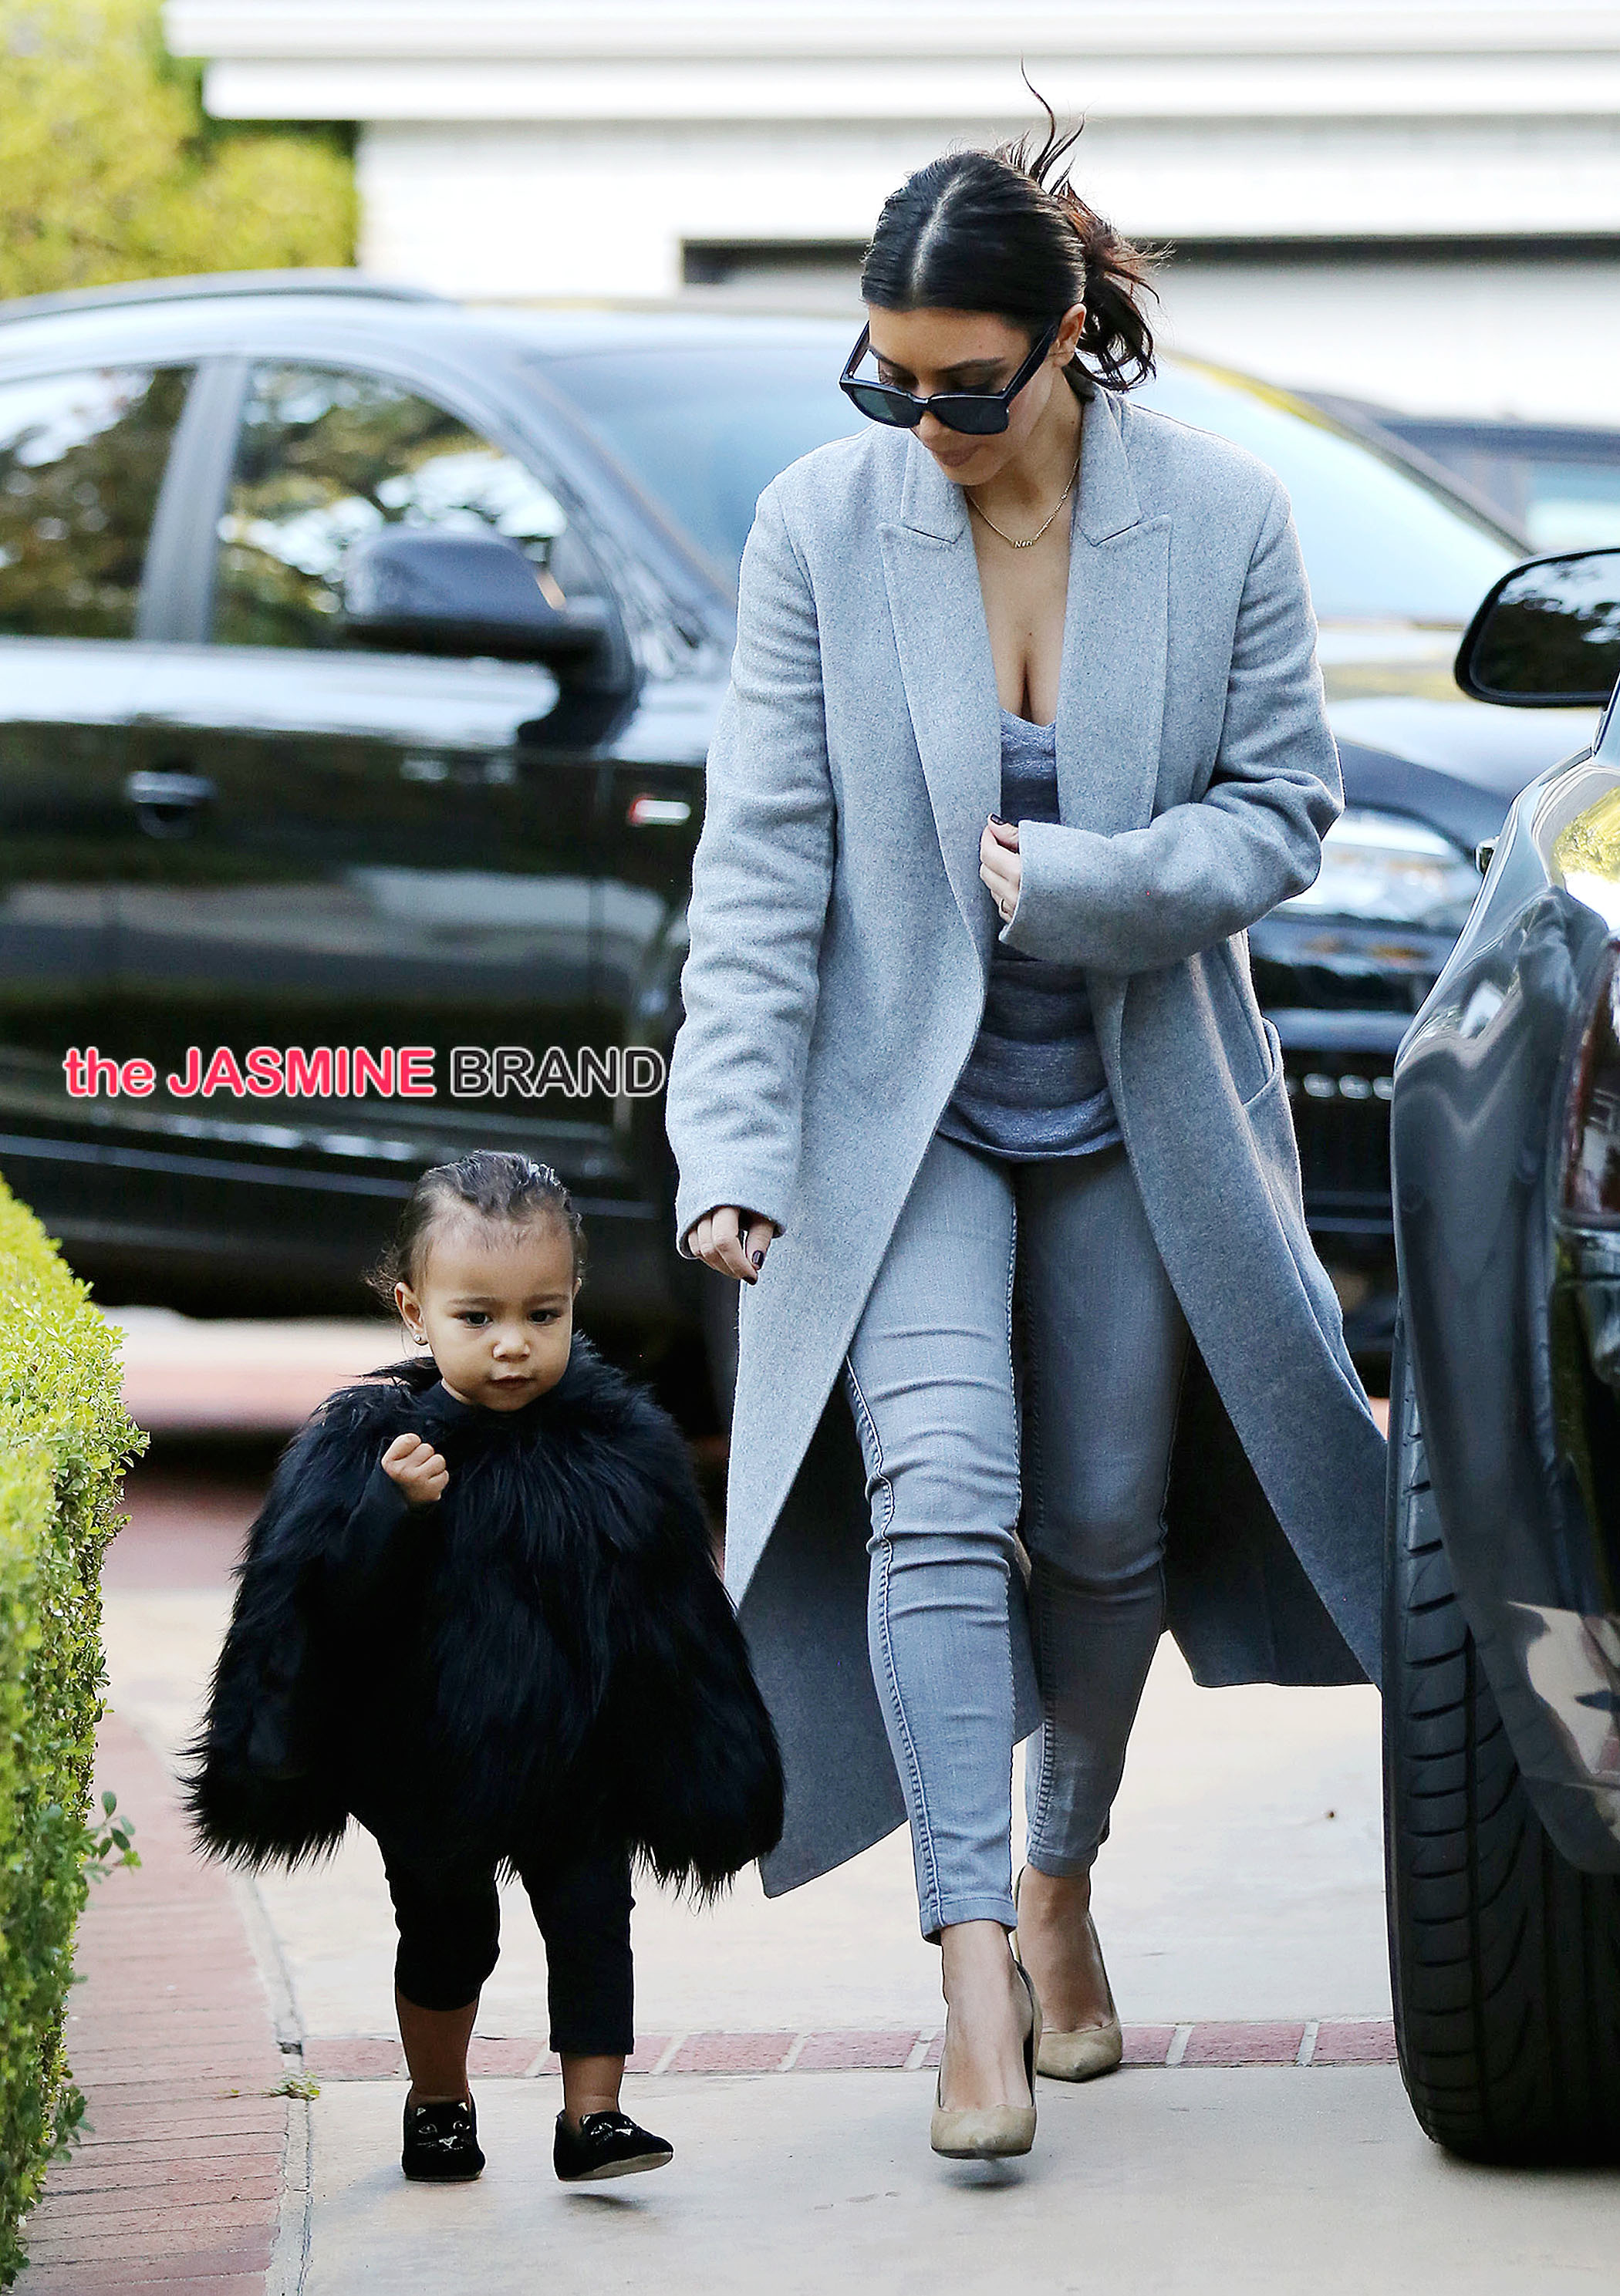 Kim Kardashian and her baby North, dressed in a black fur cape, arriving at a friend's house in Beverly Hills ****NO DAILY MAIL SALES****